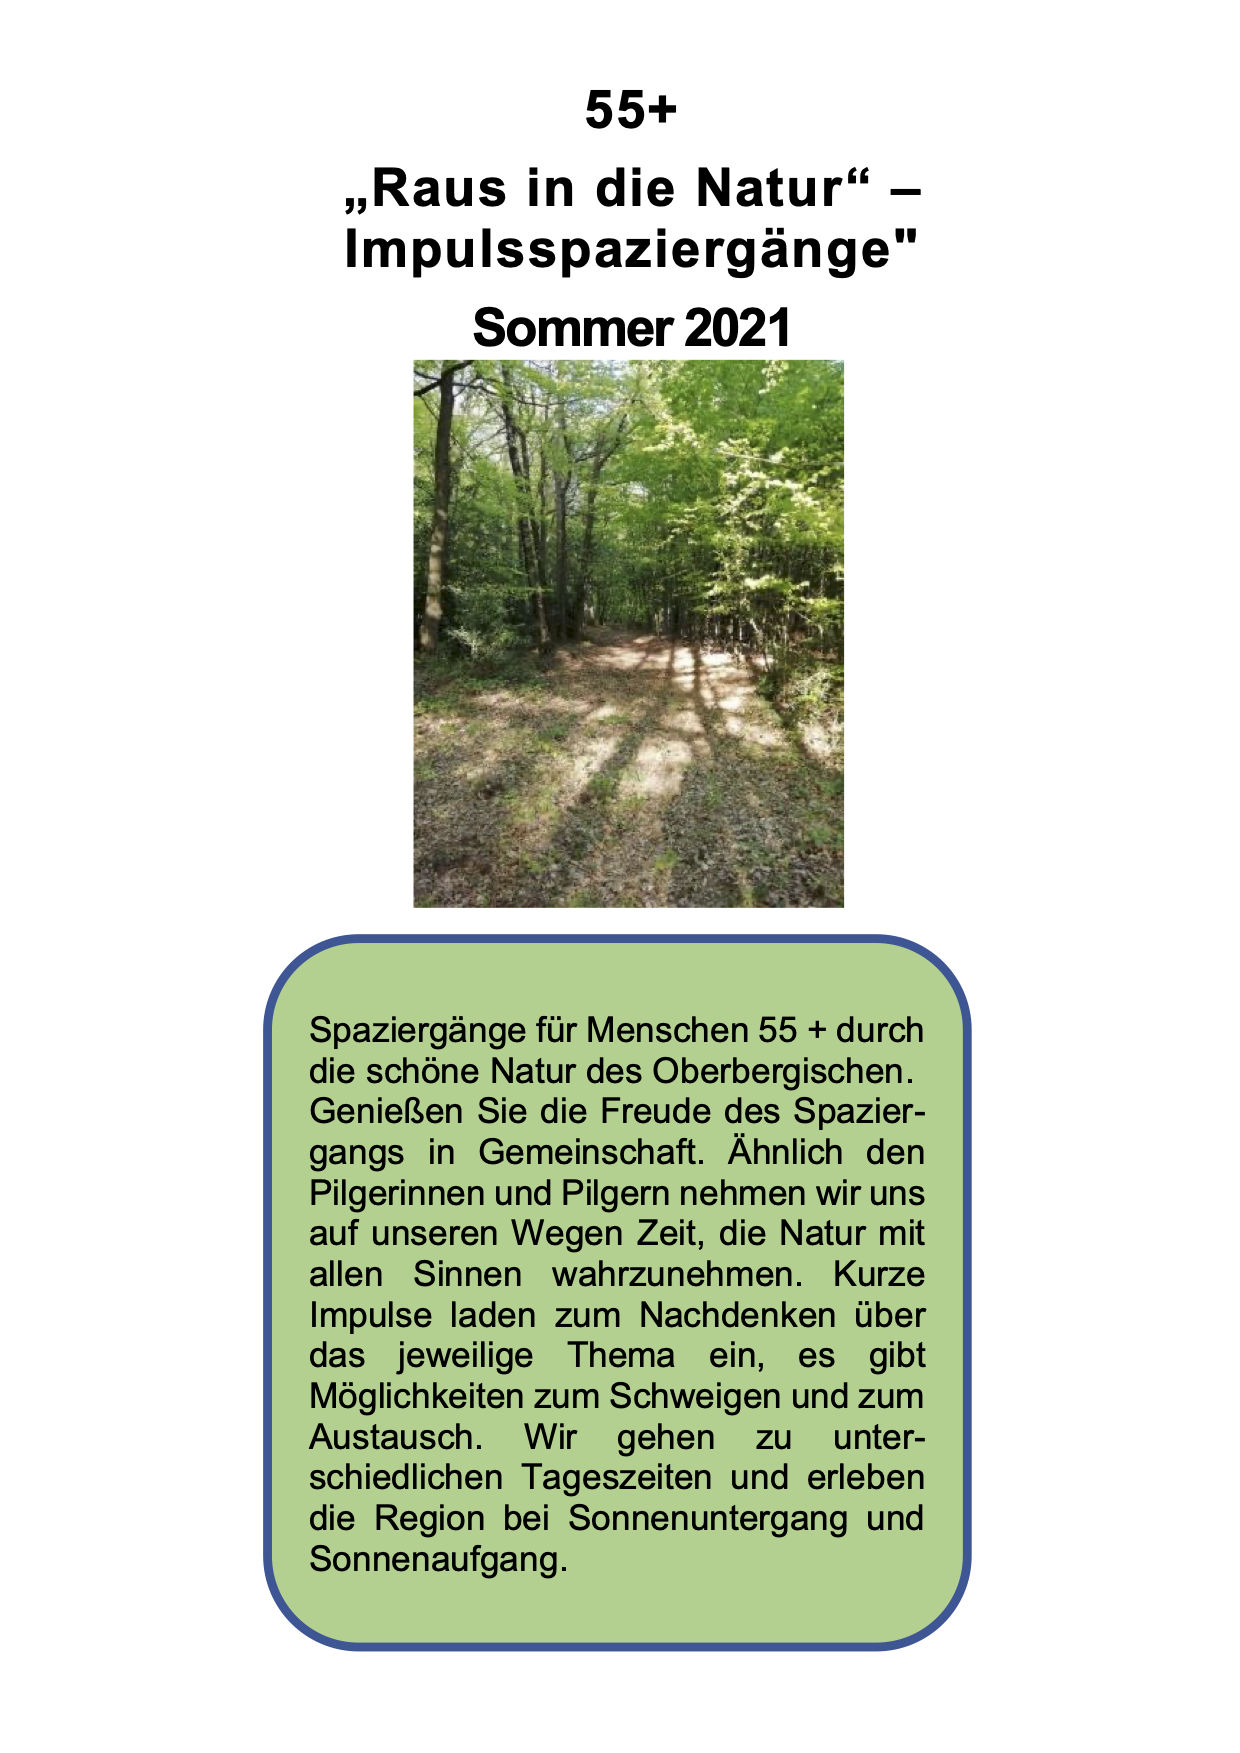 Spaziergang 55+